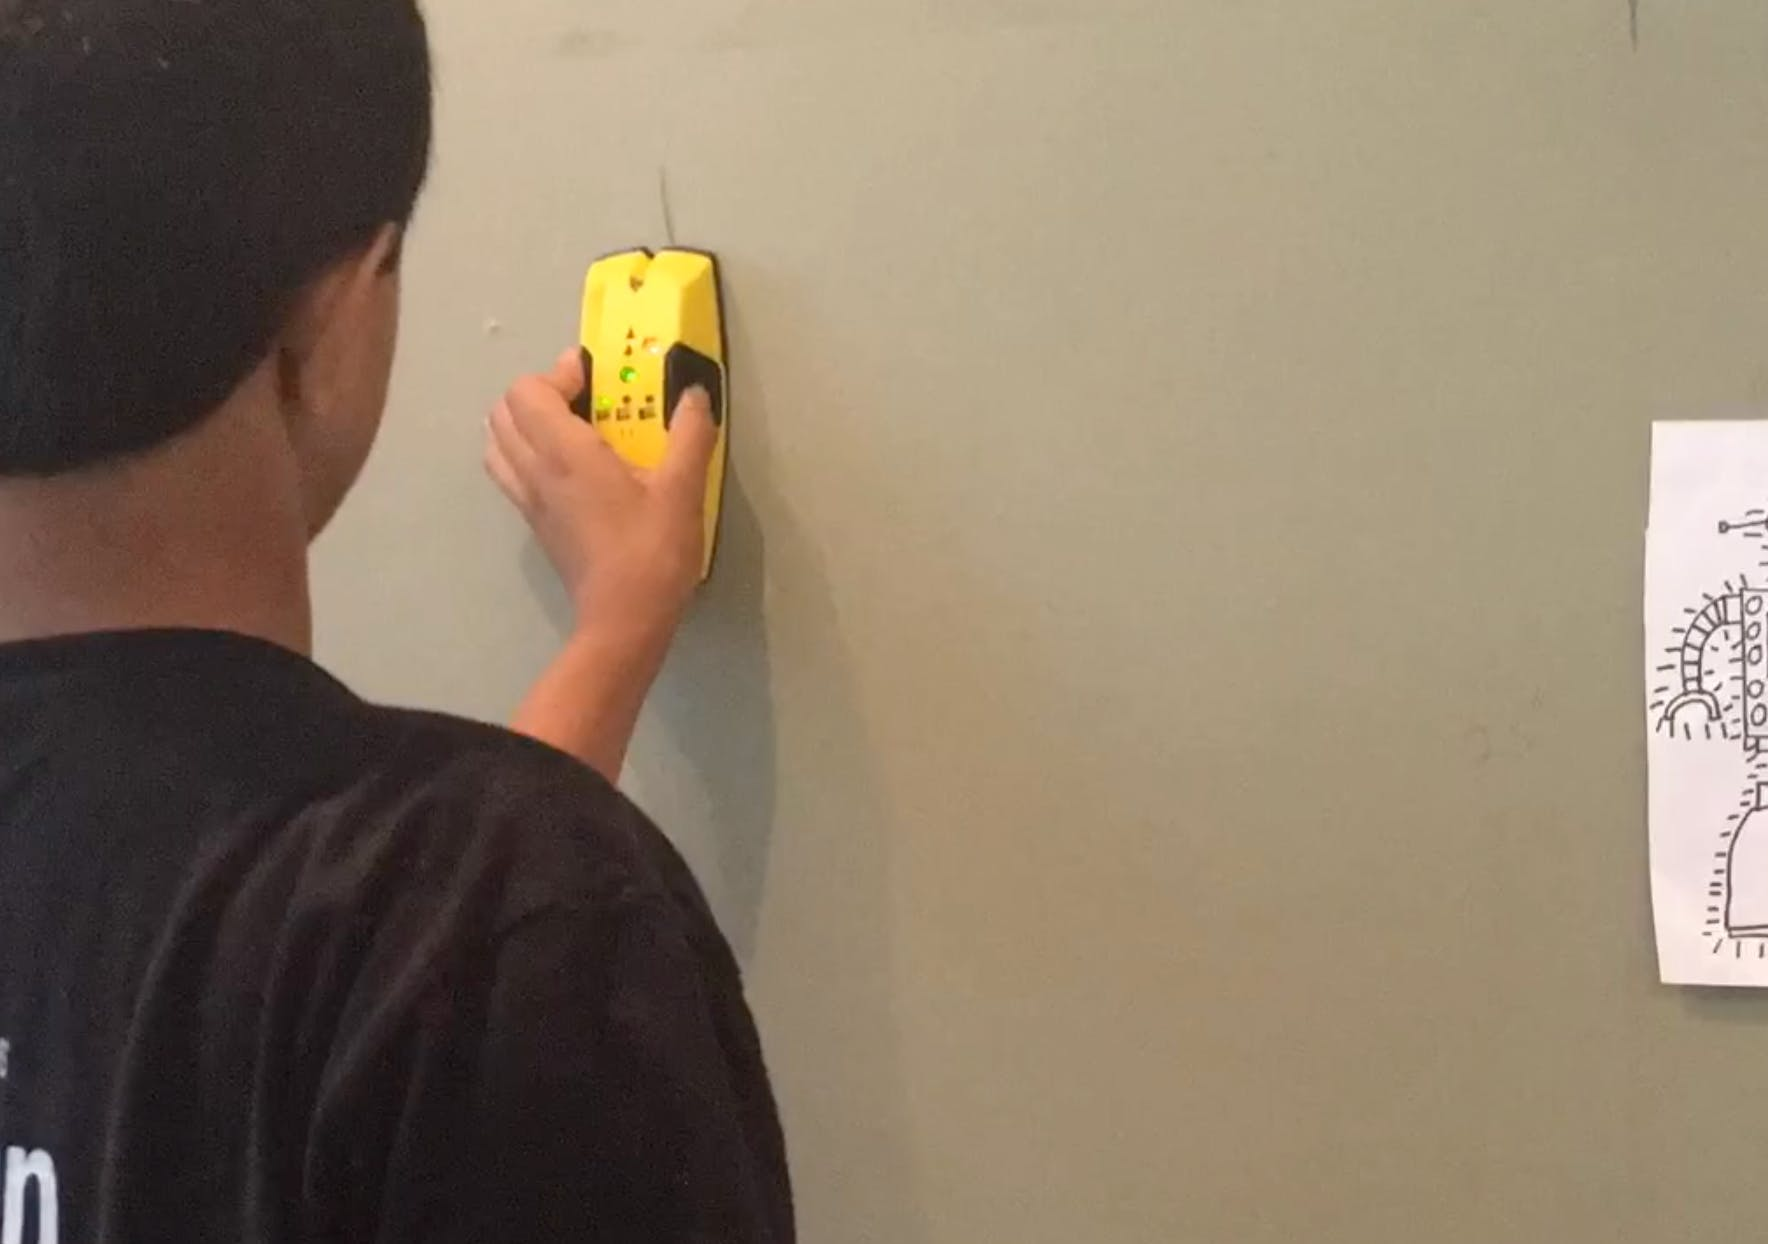 using a stud finder